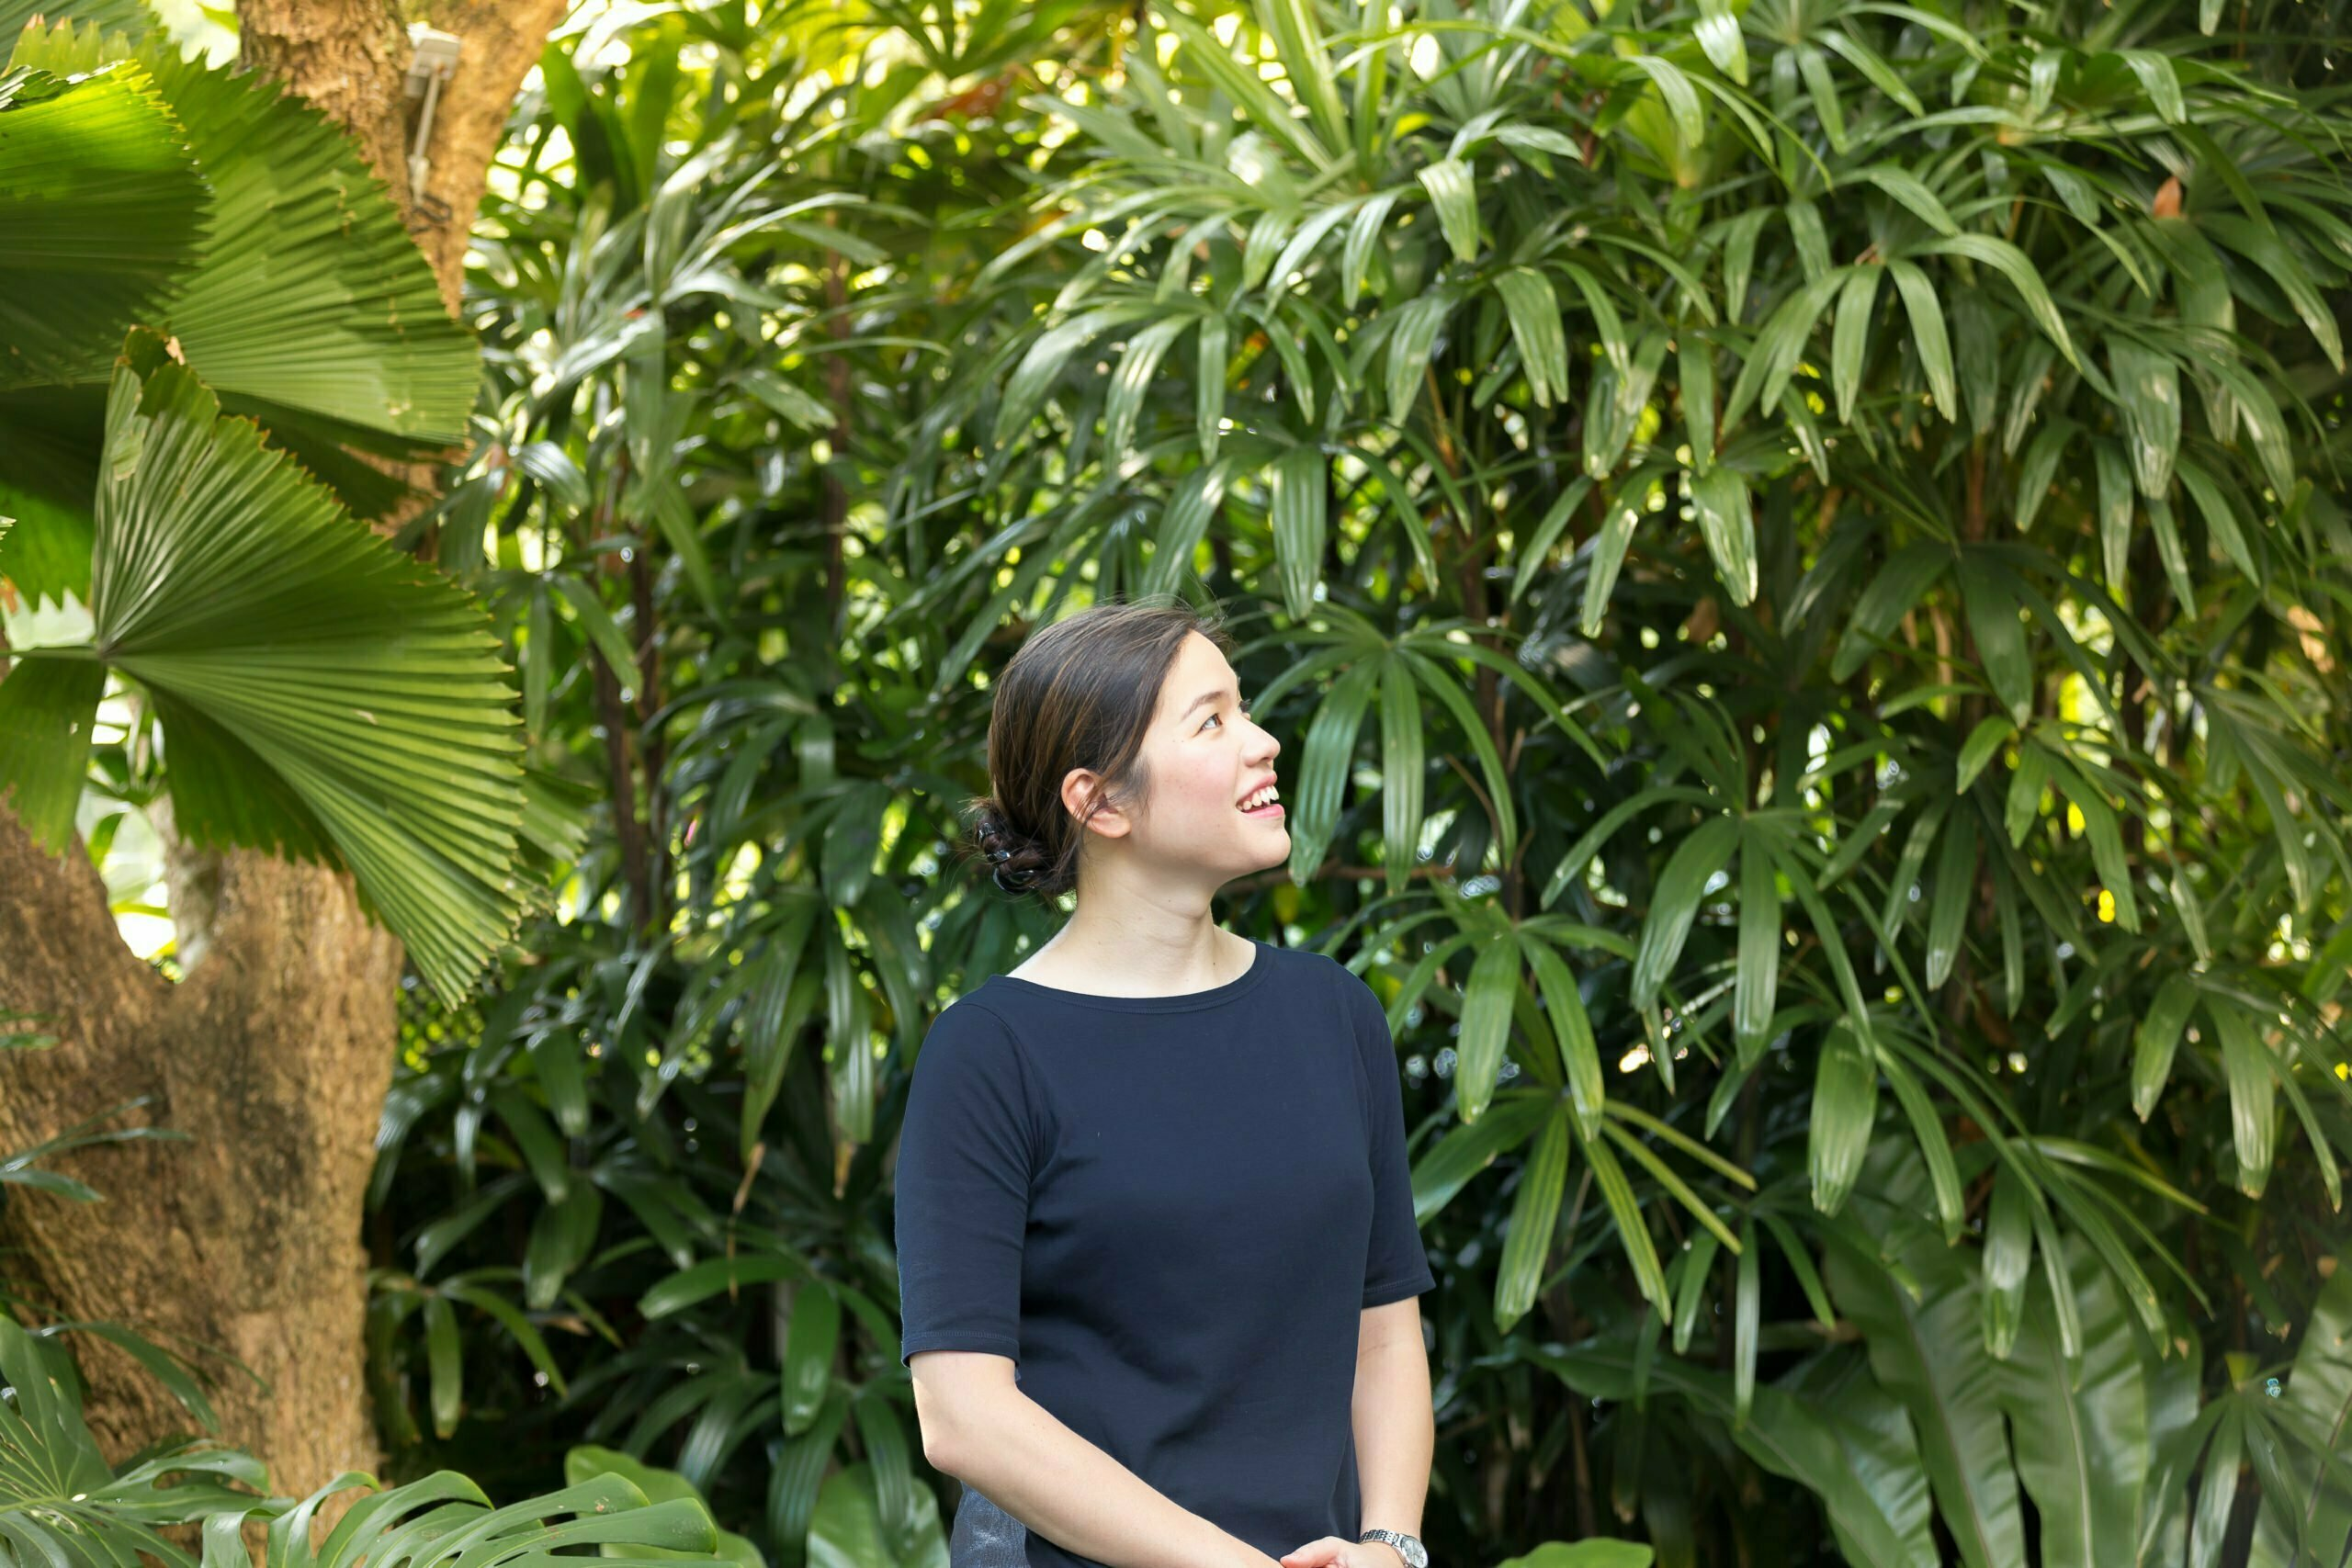 Spotlight: Jemima Ooi's Story On Missions In The Congo